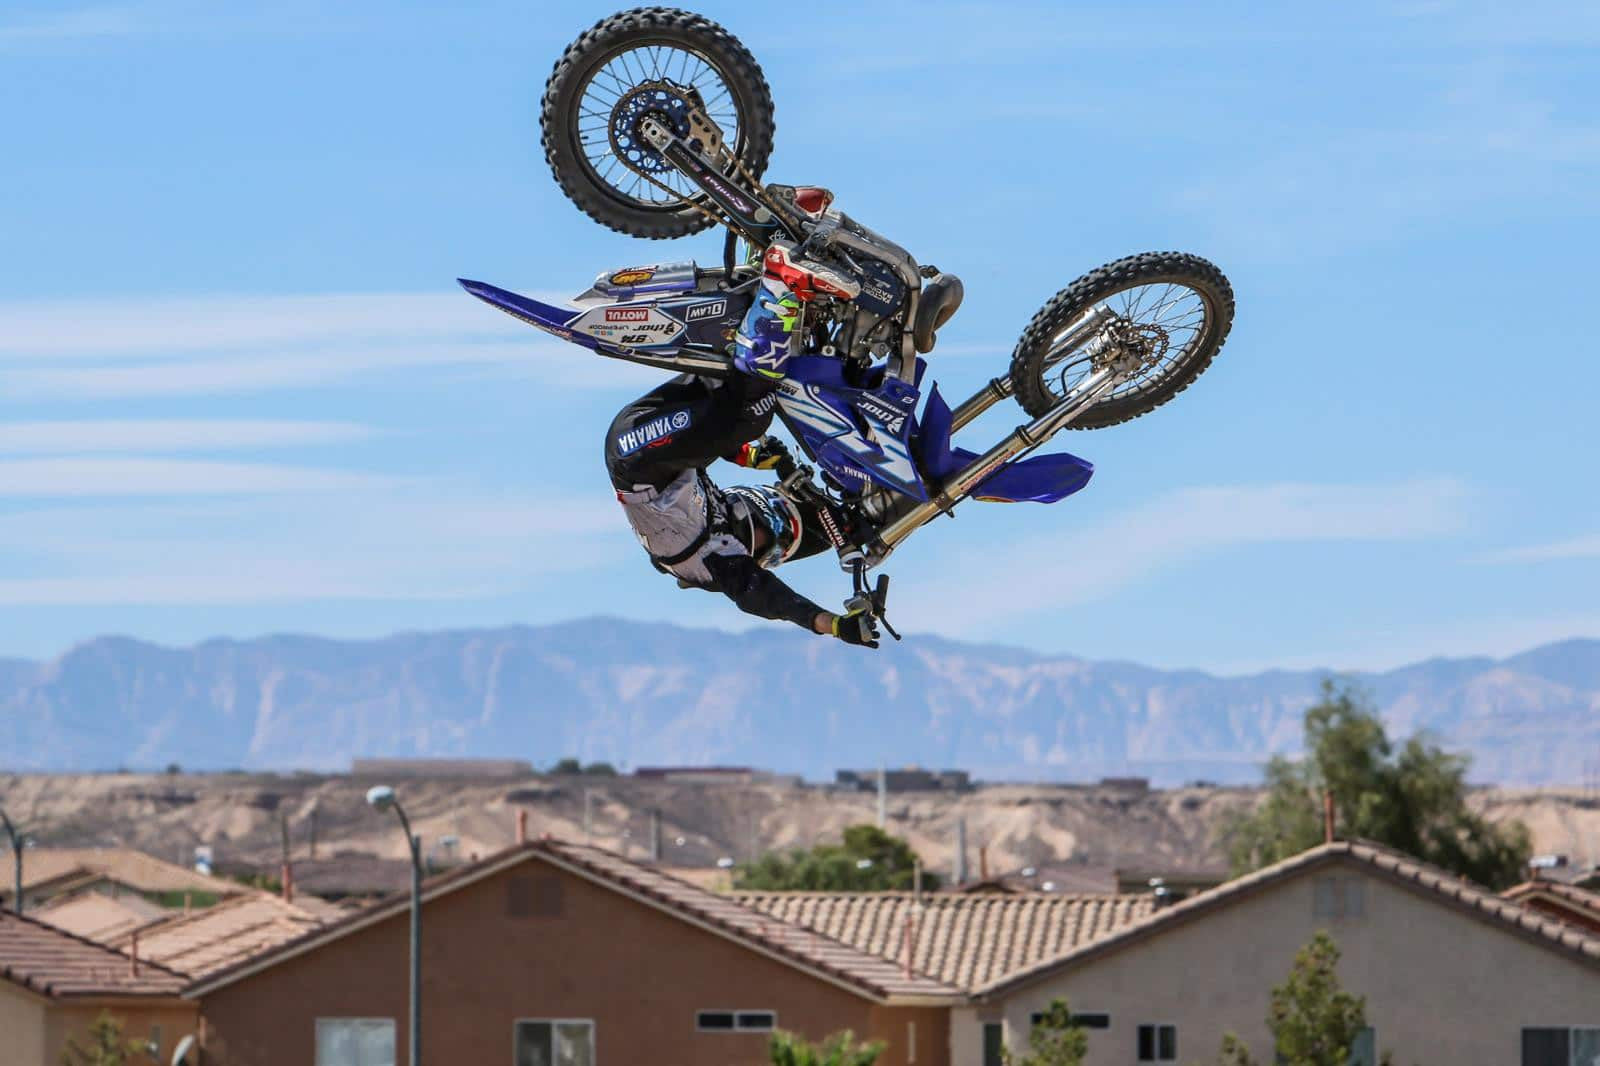 Jarryd McNeil Teaches us How to Whip a Dirtbike